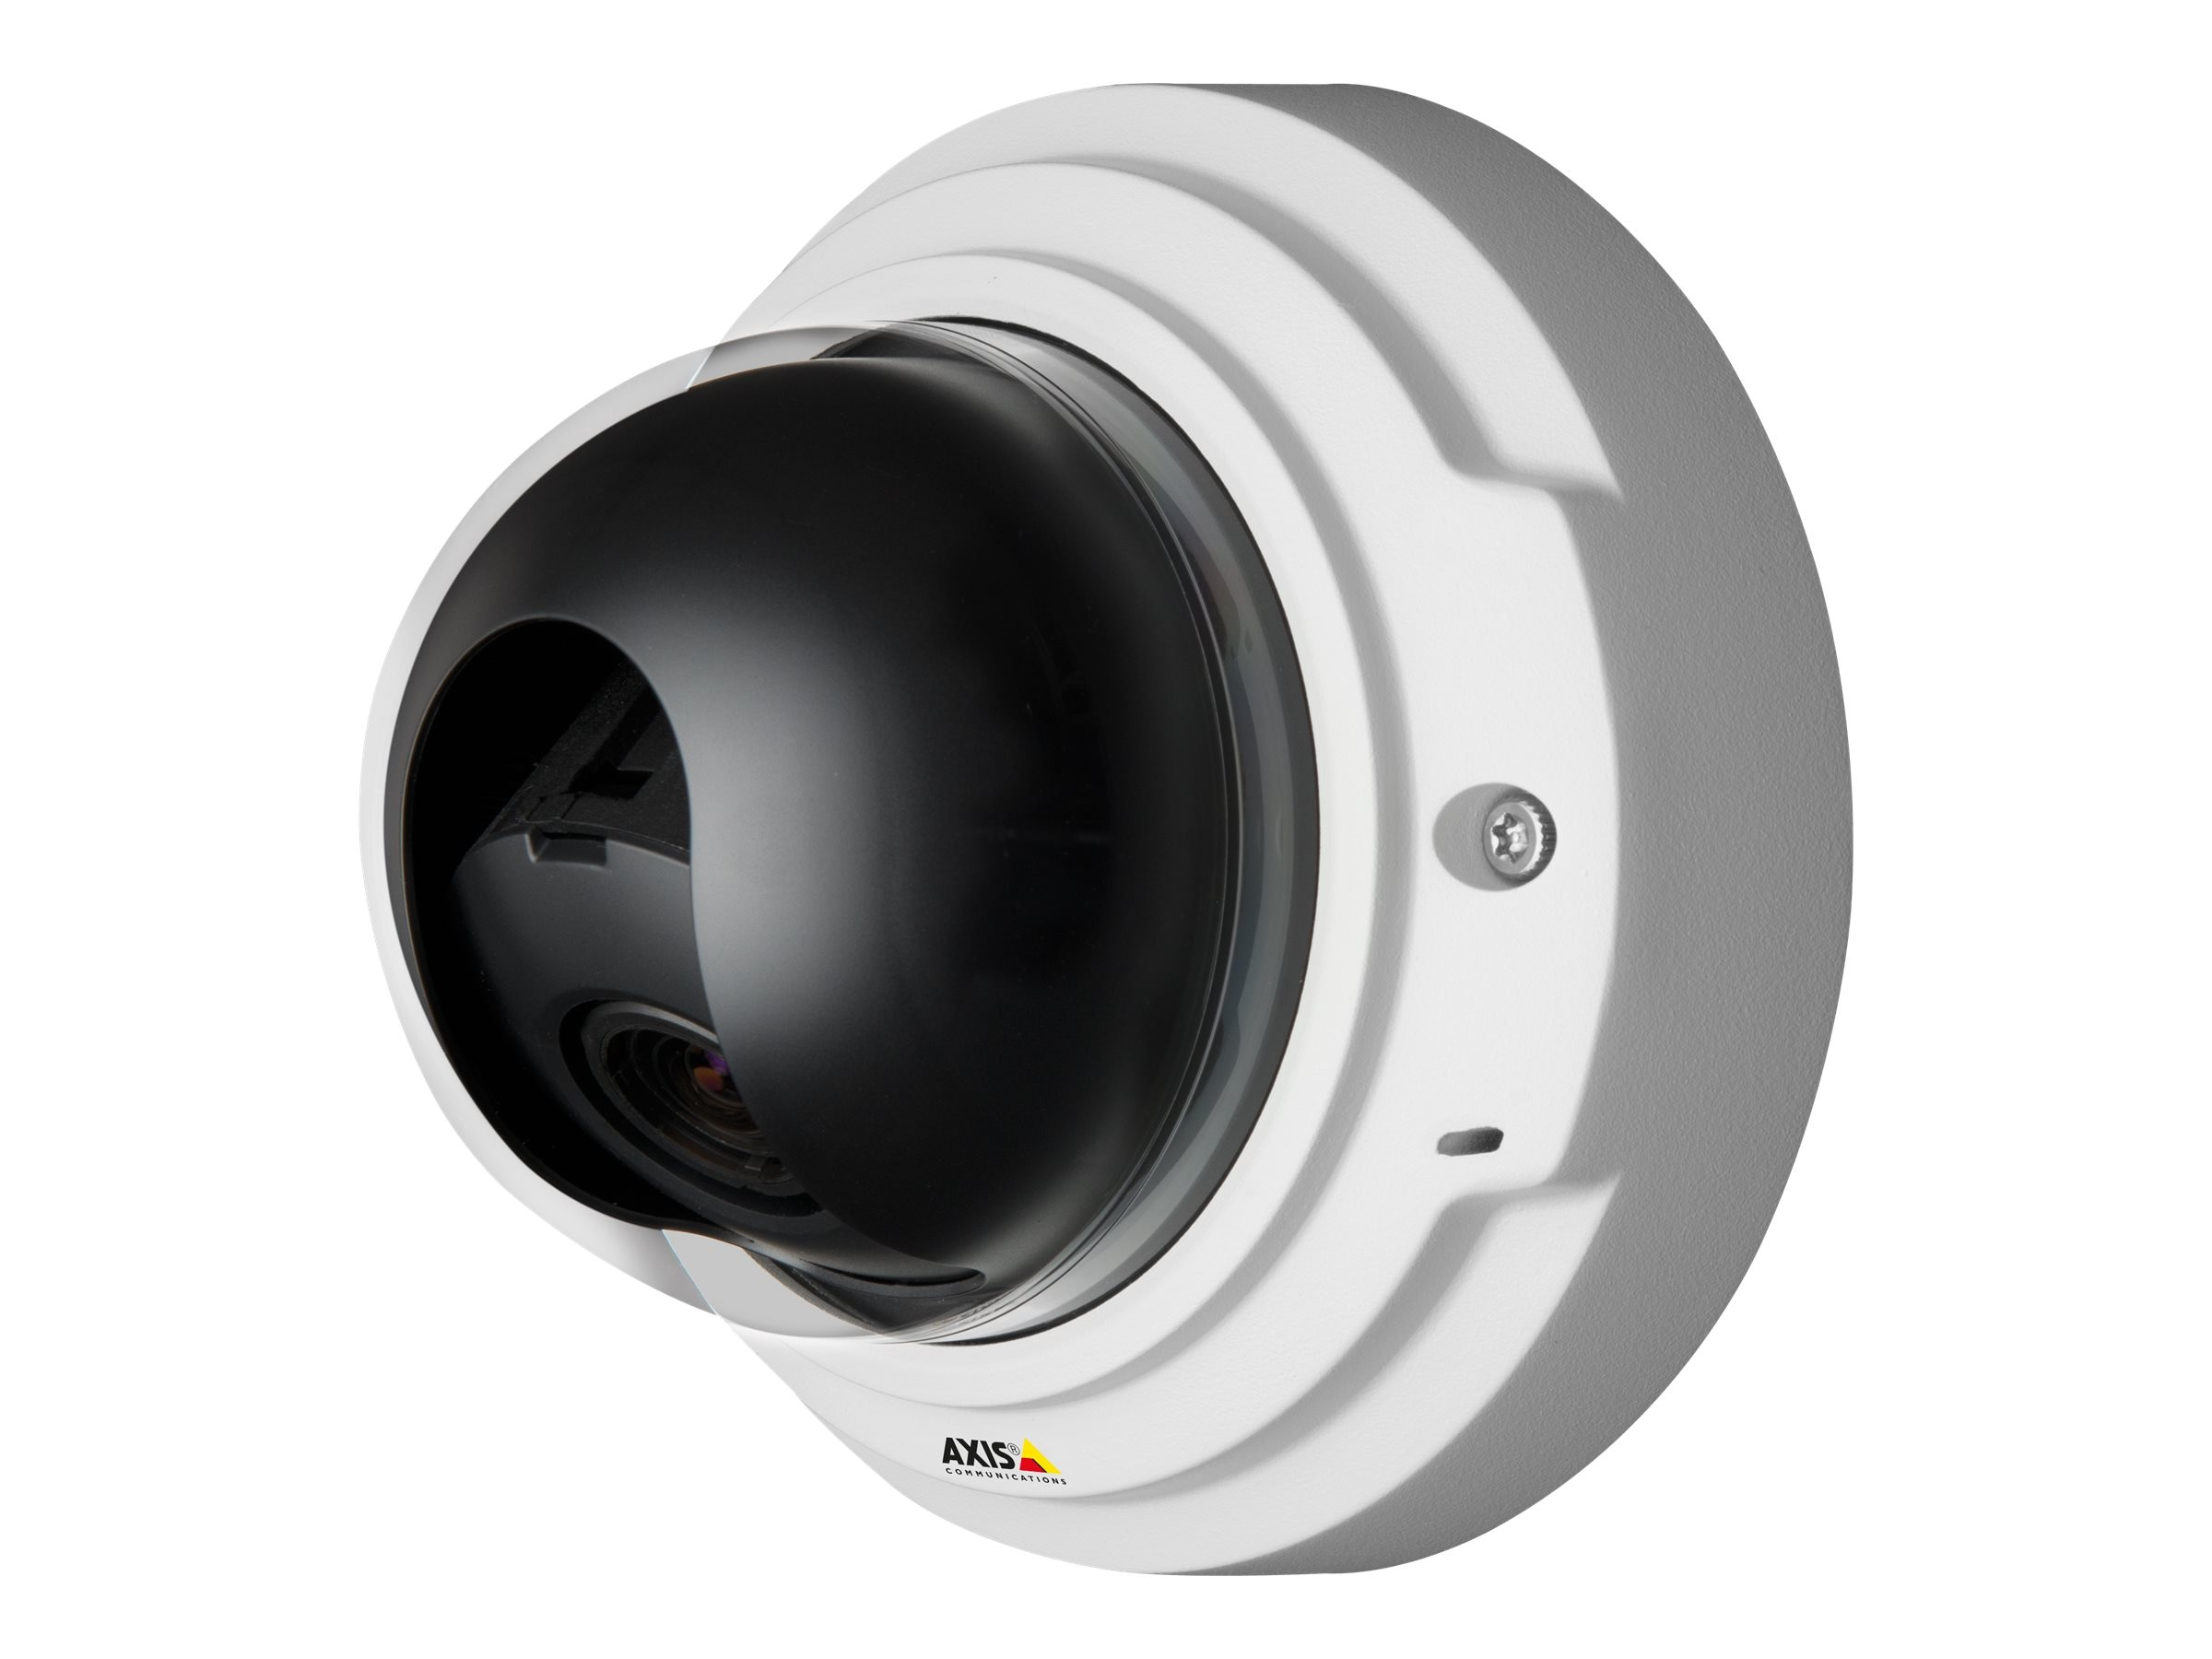 Axis P3367-V Fixed Vandal-Proof Dome Camera, 5MP, 3-9mm Lens, 0406-001, 13340936, Cameras - Security